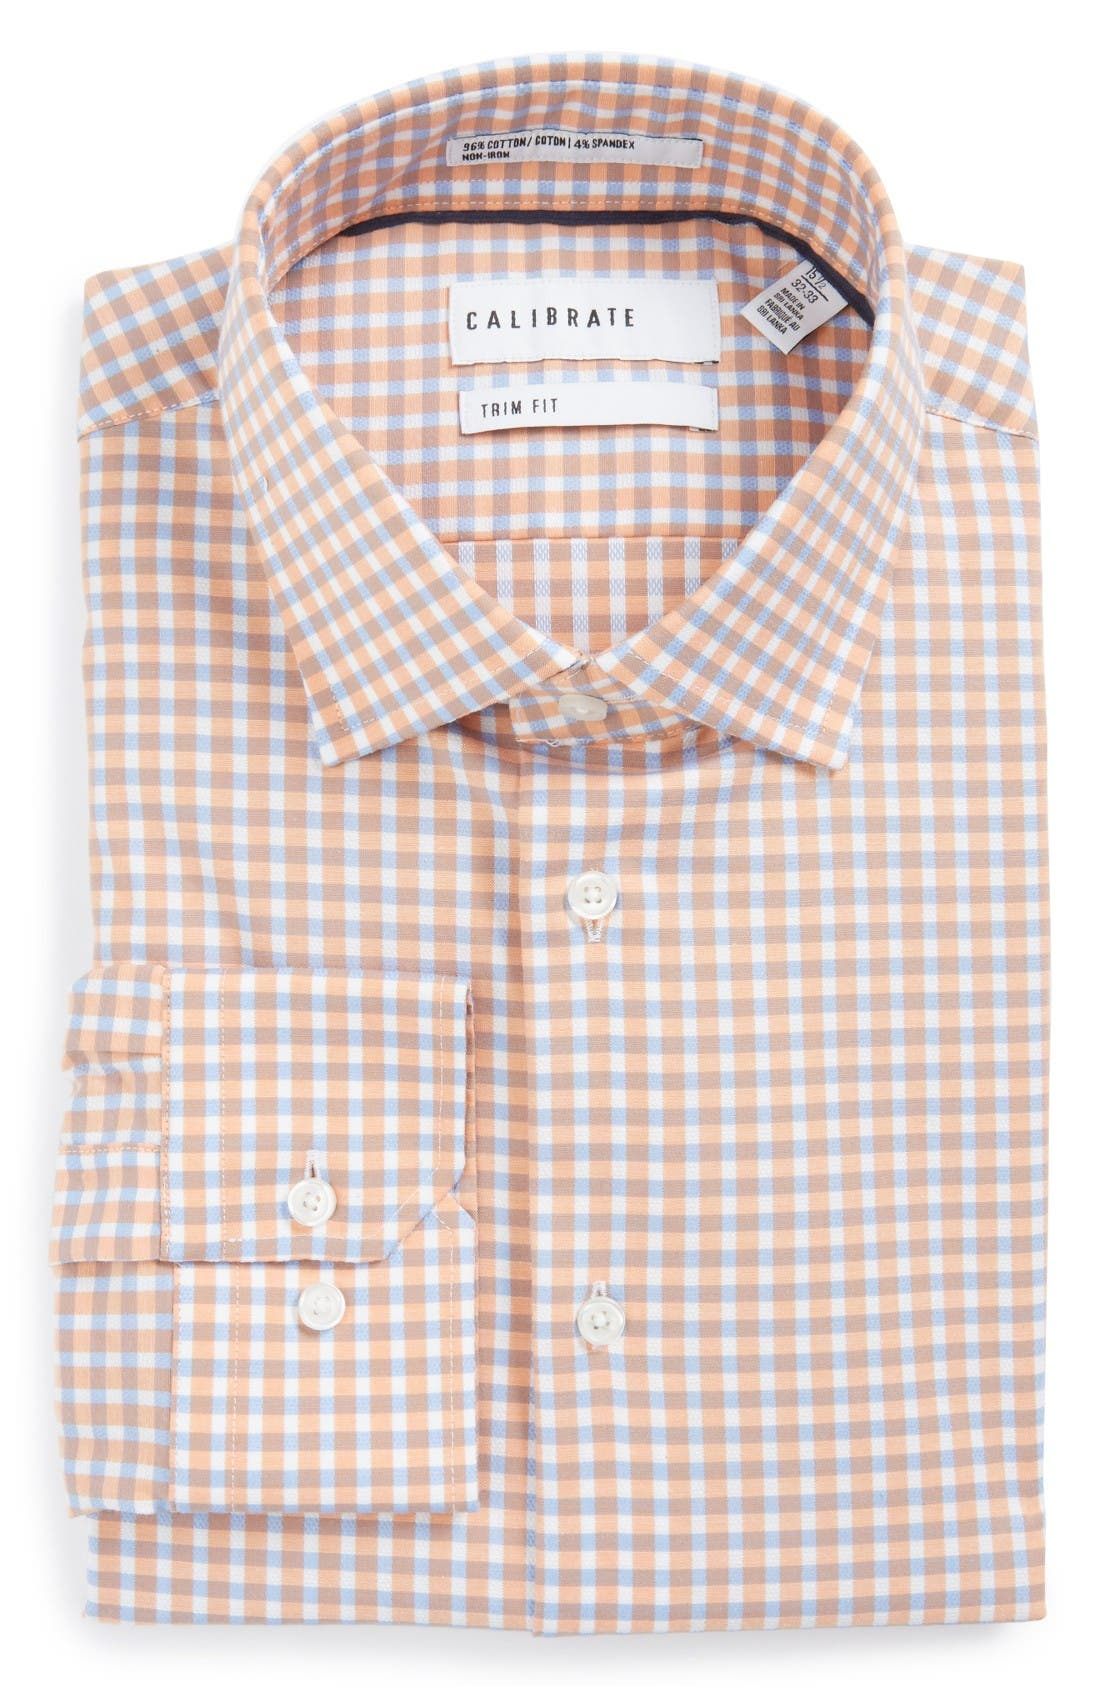 CALIBRATE Trim Fit Non-Iron Check Stretch Dress Shirt